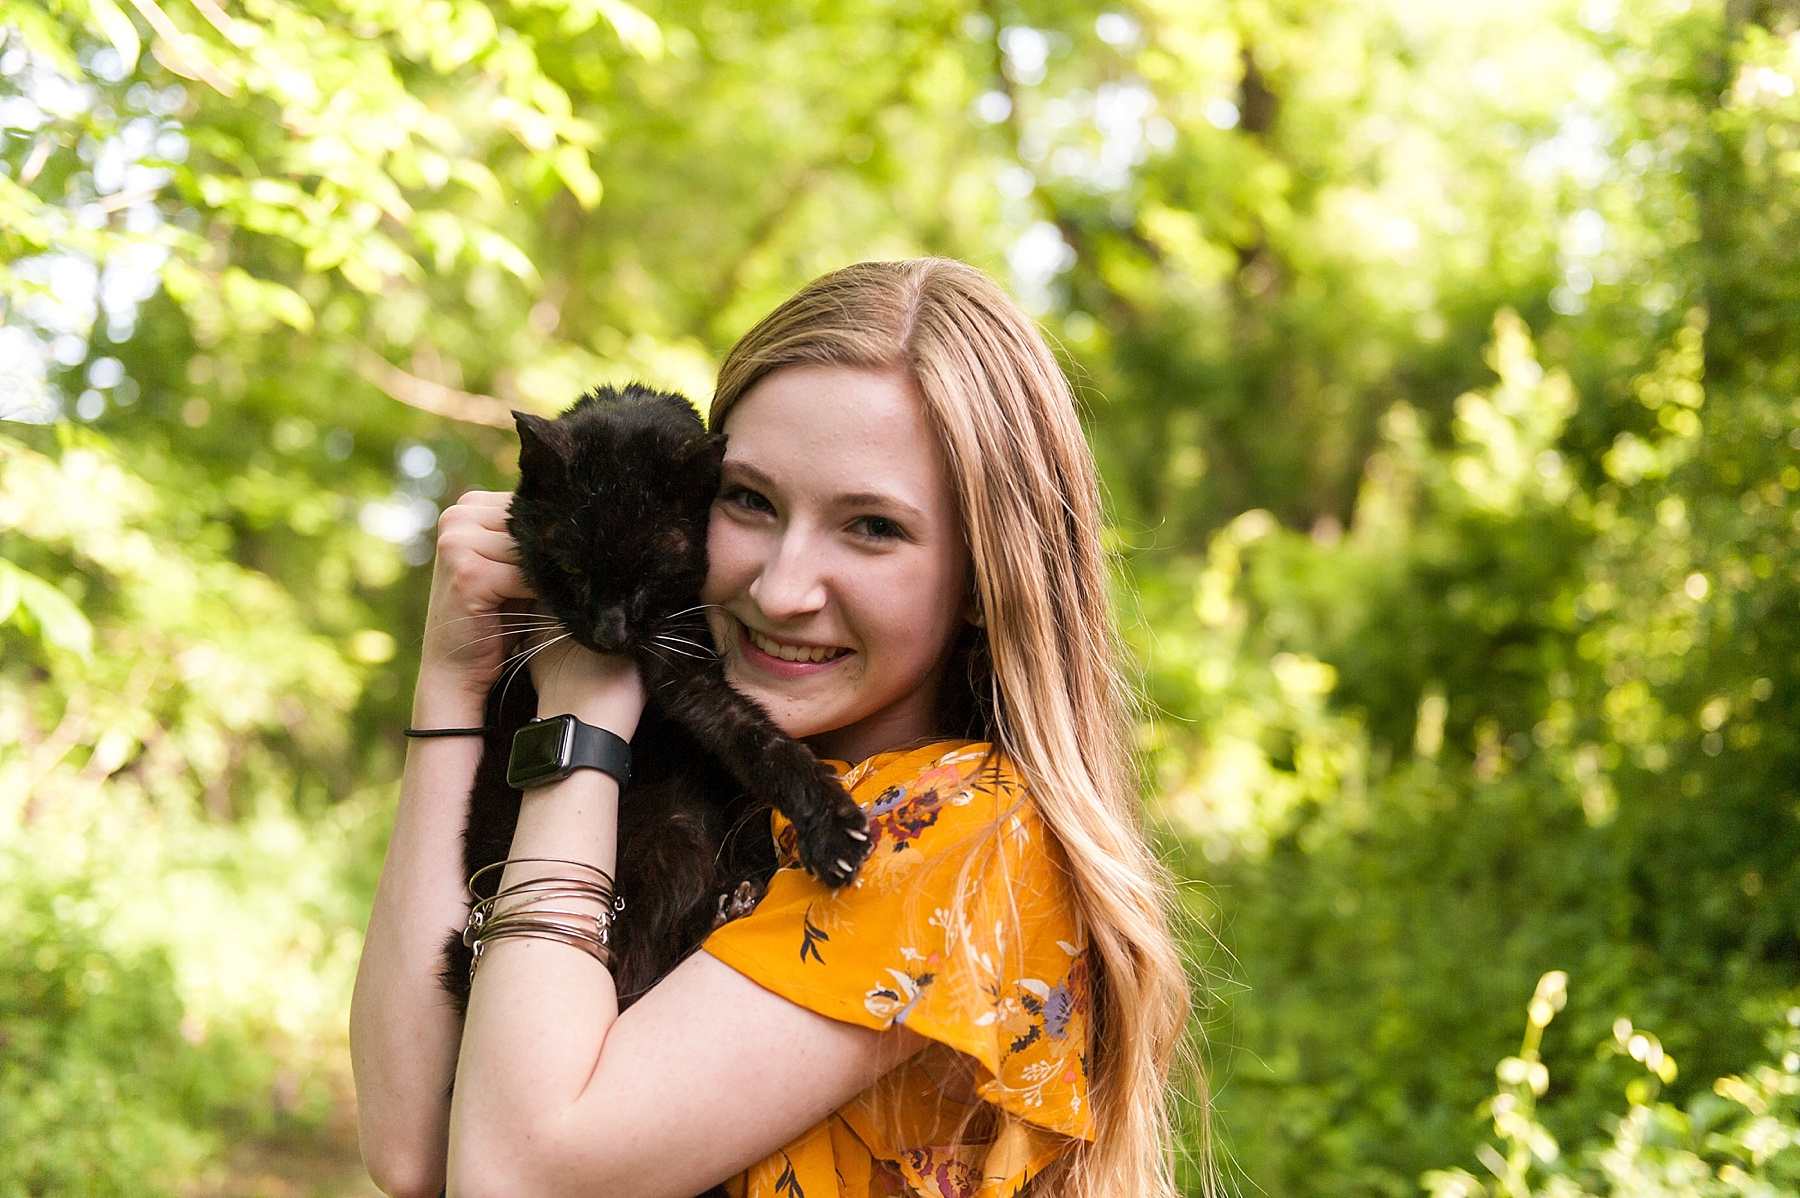 Wendy Zook Photography | Frederick MD senior portrait photographer, Frederick senior portraits, Maryland senior portrait photographer, MD senior portraits, senior portraits, senior photos with pets, MD senior photographer, senior session, Frederick senior session